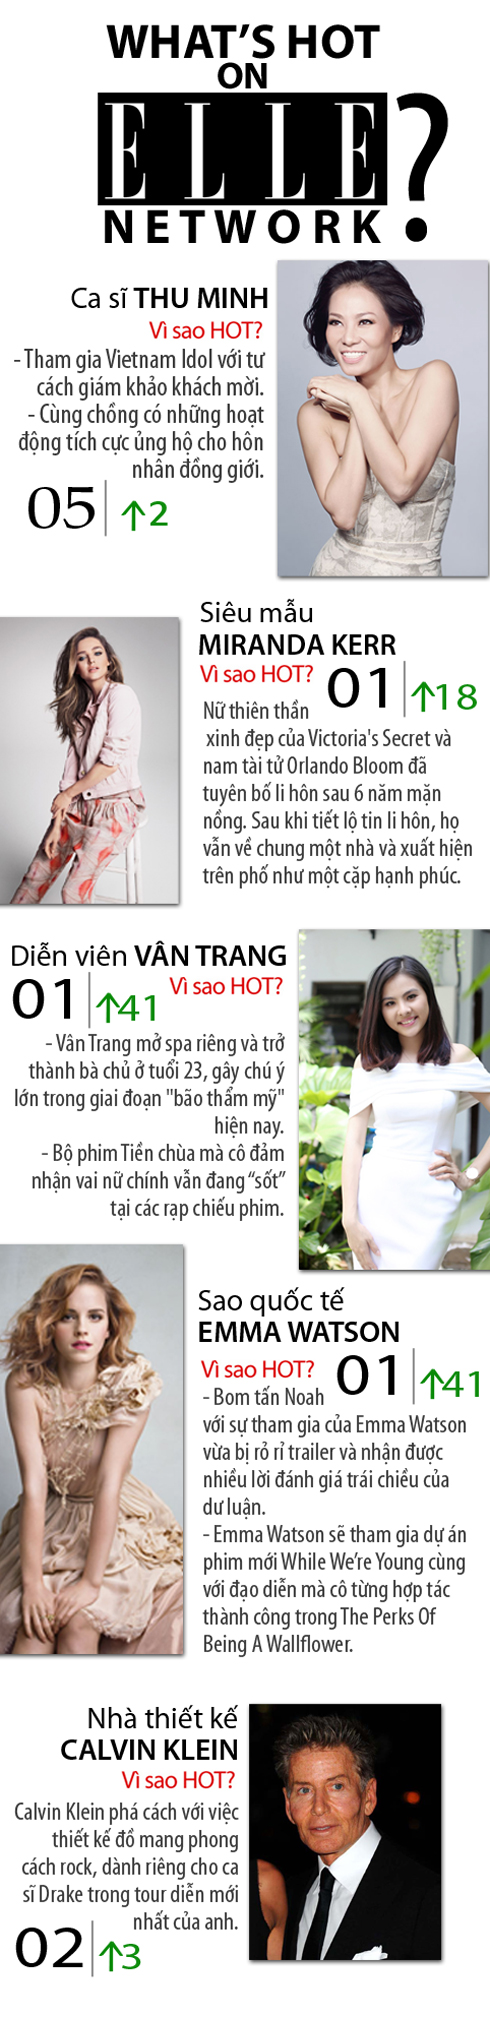 ellevn-whats-hot-elle-network-thang-tuan-4